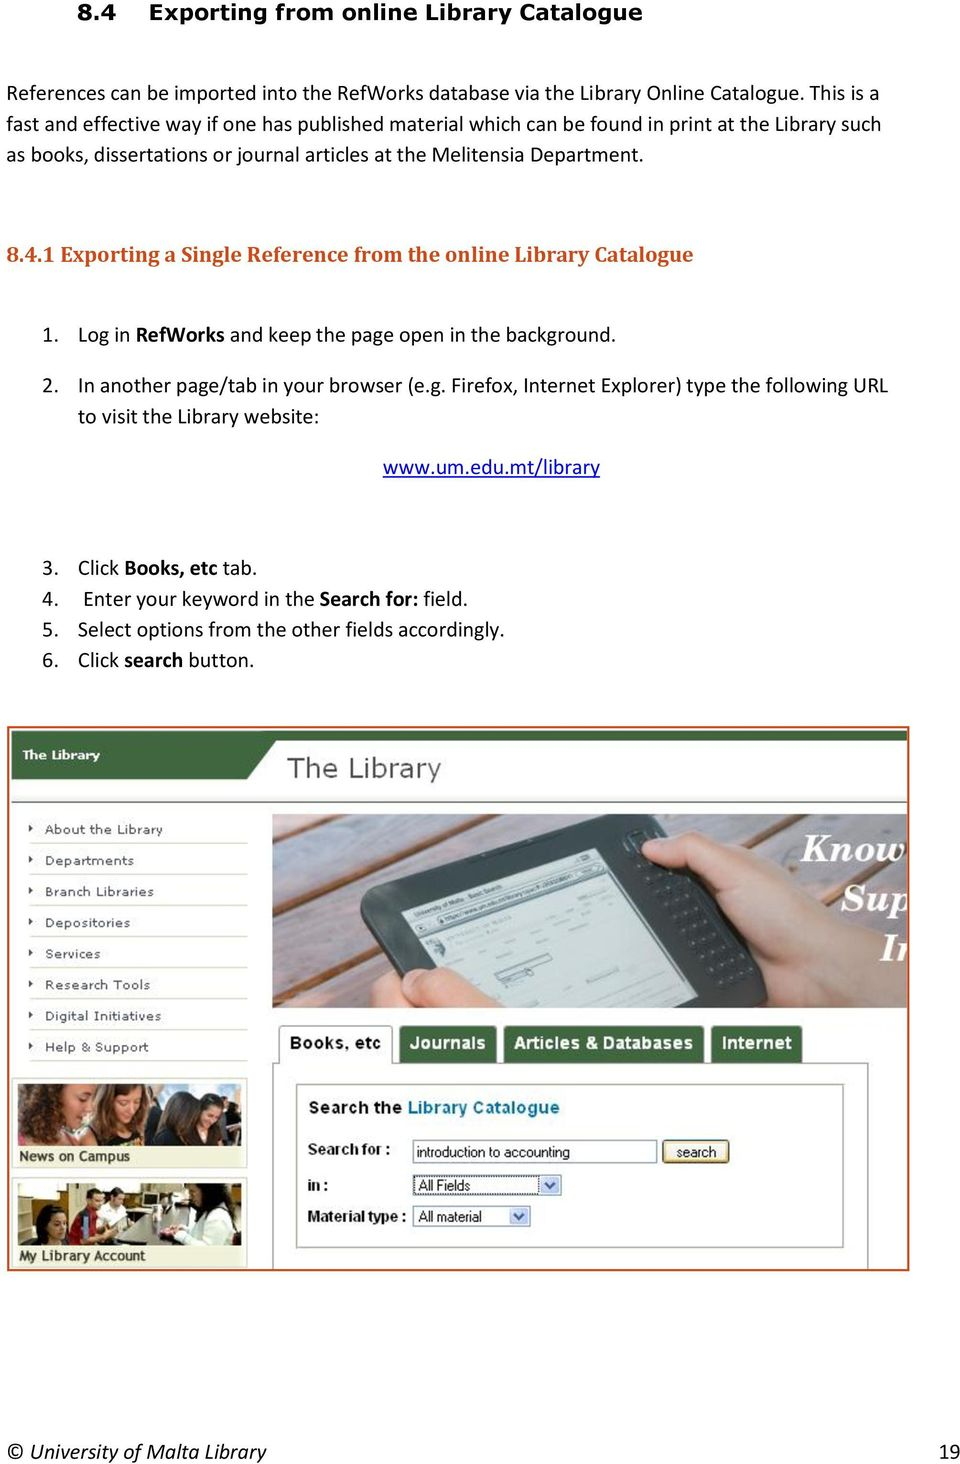 1 Exporting a Single Reference from the online Library Catalogue 1. Log in RefWorks and keep the page open in the background. 2. In another page/tab in your browser (e.g. Firefox, Internet Explorer) type the following URL to visit the Library website: www.